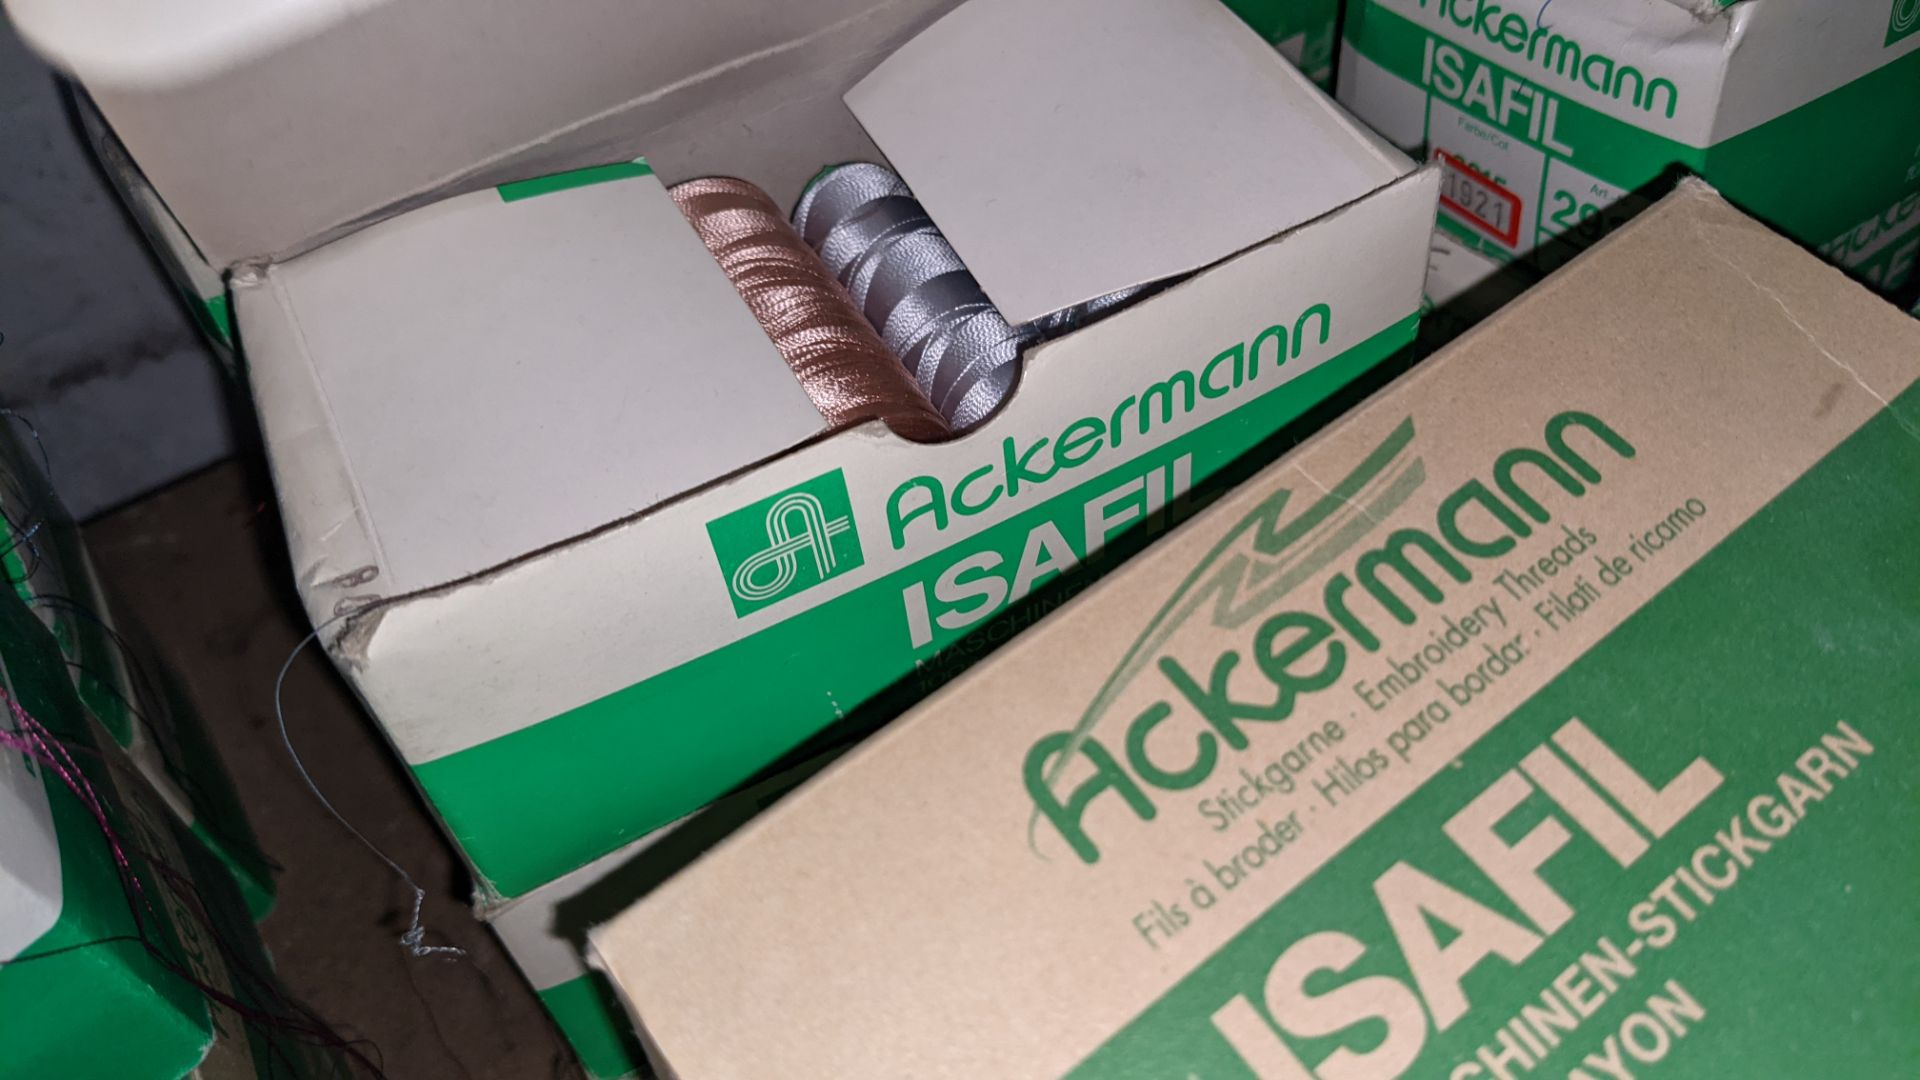 16 boxes of Ackermann Isafil viscose/rayon embroidery thread - Image 8 of 10